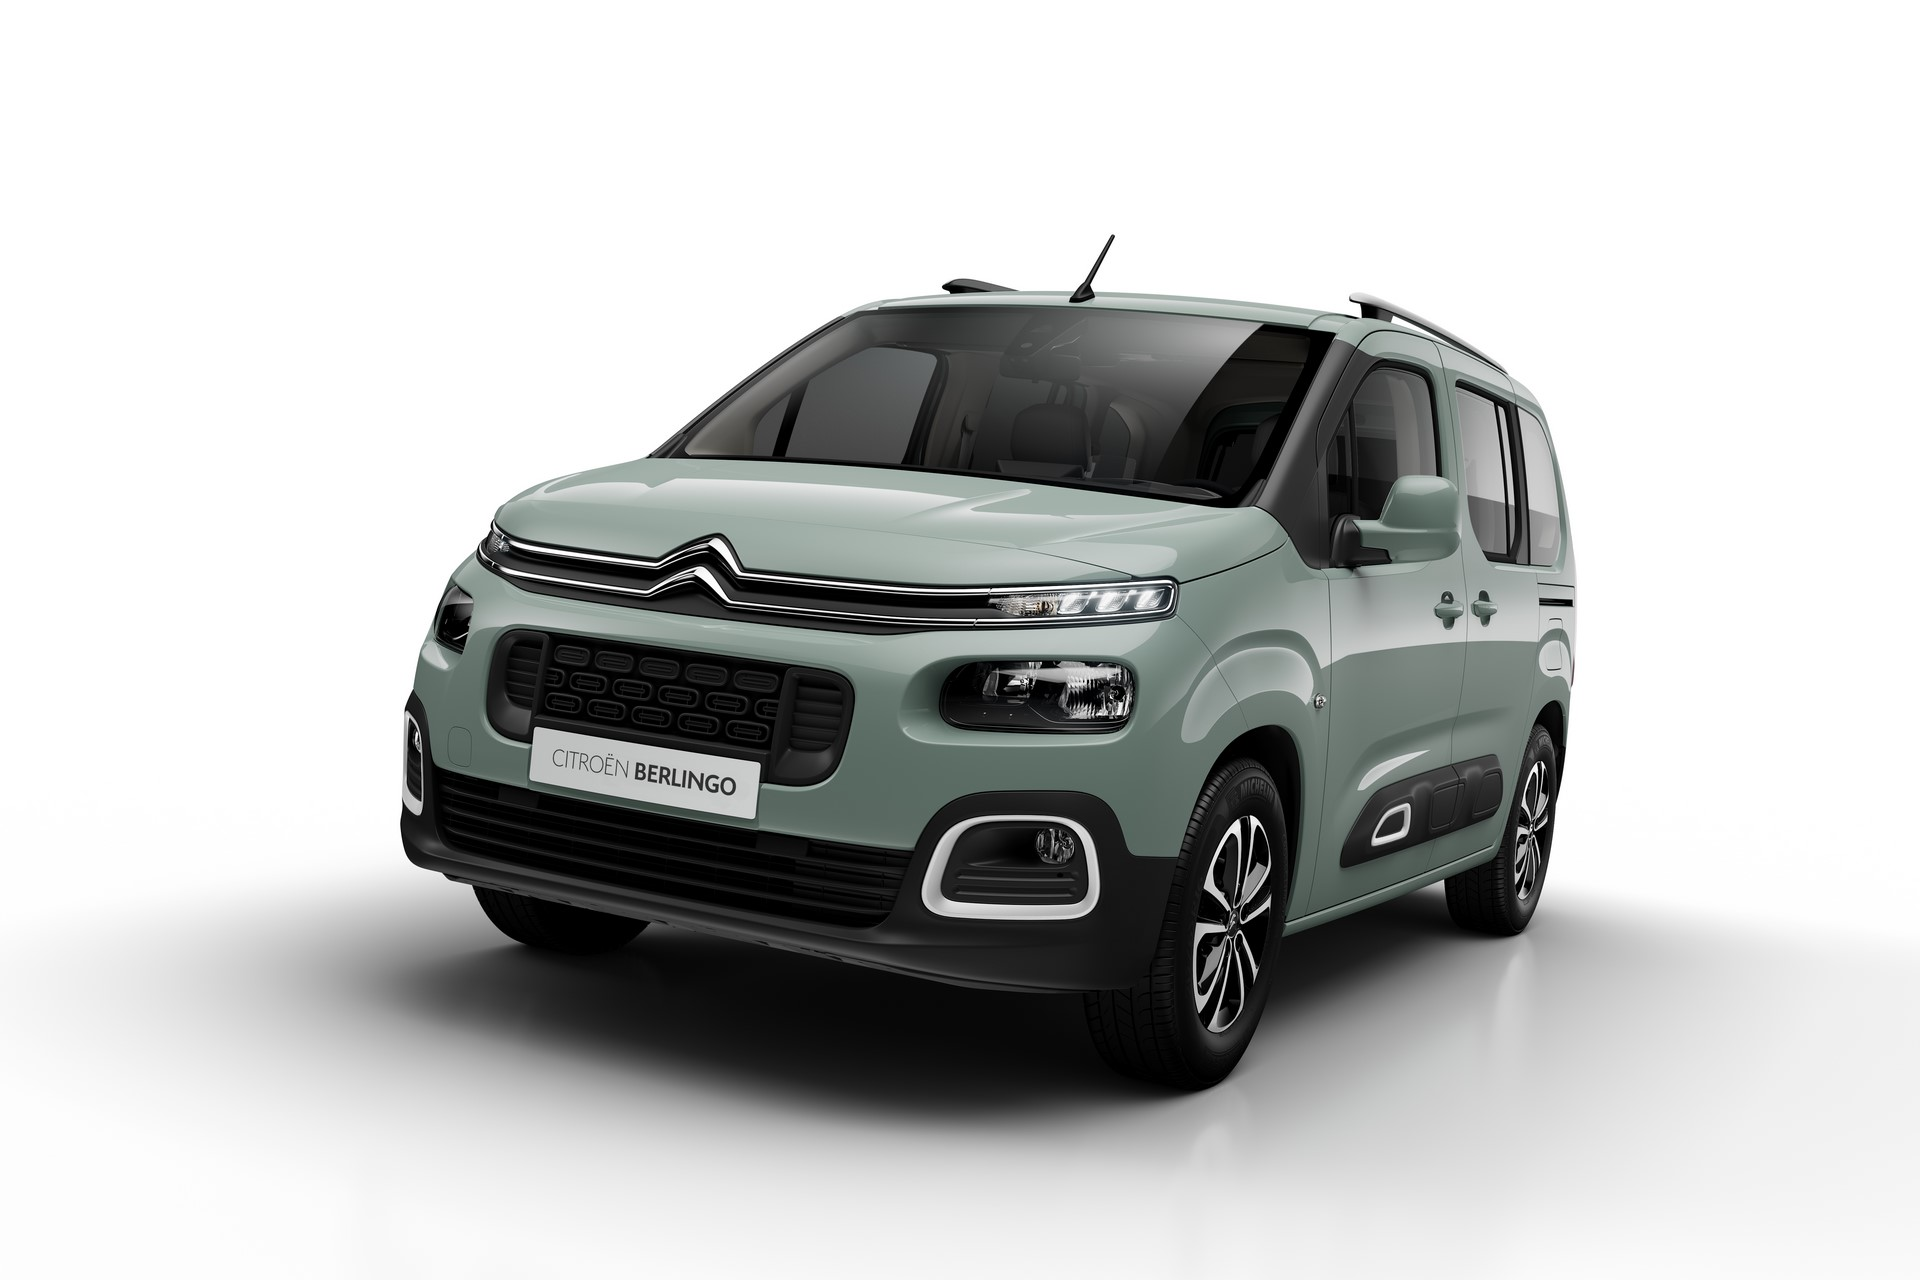 Citroen Berlingo 2018 (58)